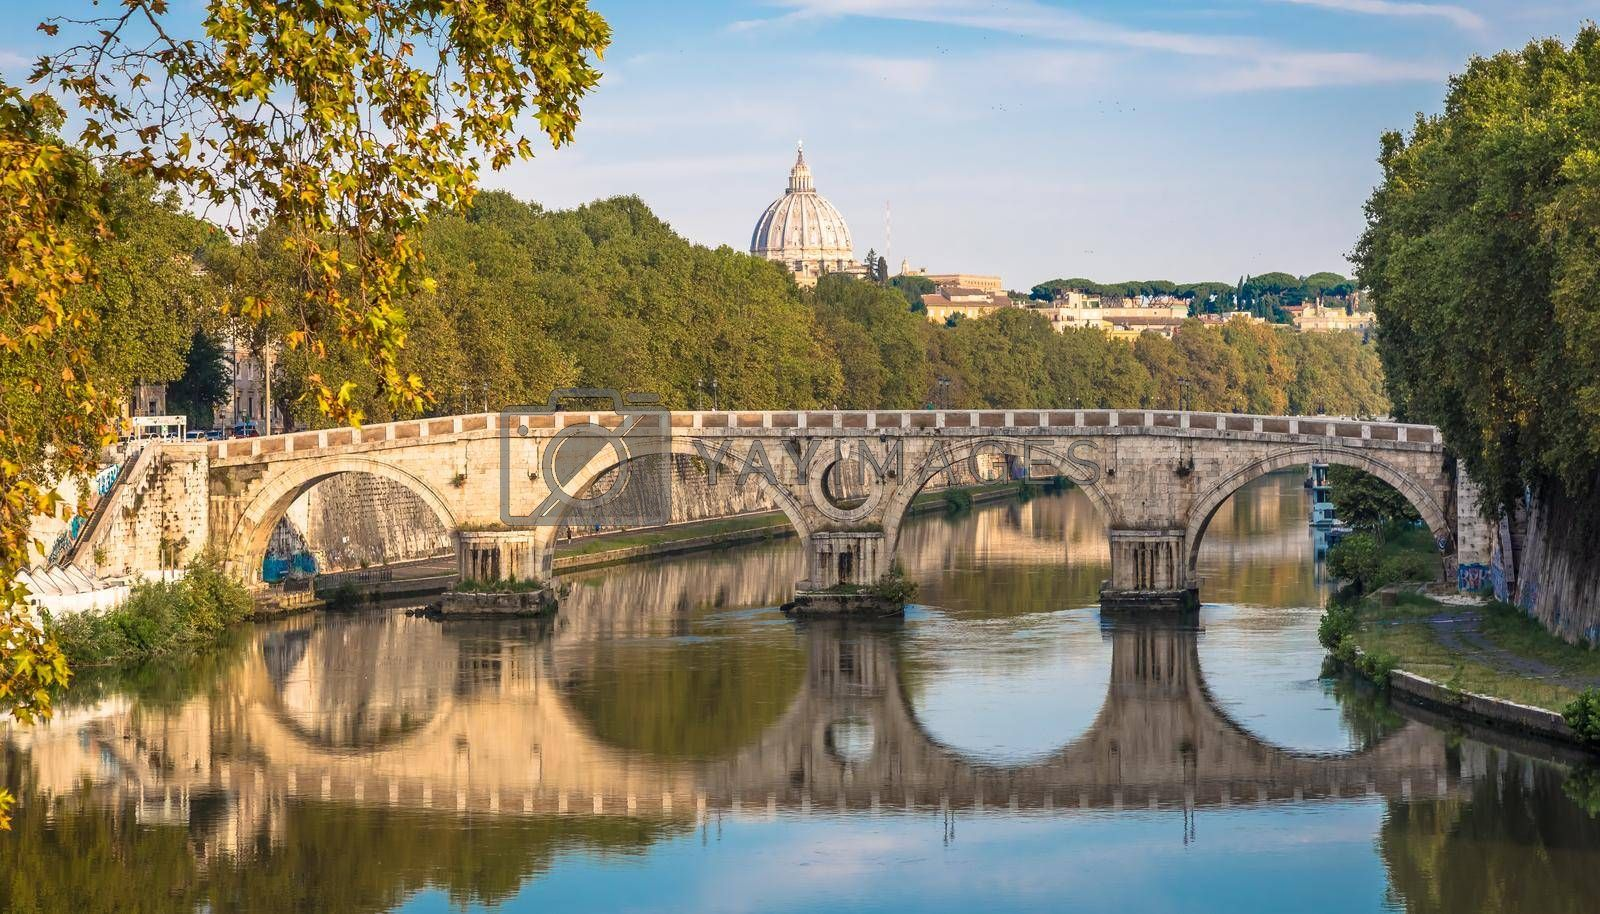 Royalty free image of Bridge on Tiber river in Rome, Italy. Vatican Basilica cupola in background with sunrise light. by Perseomedusa